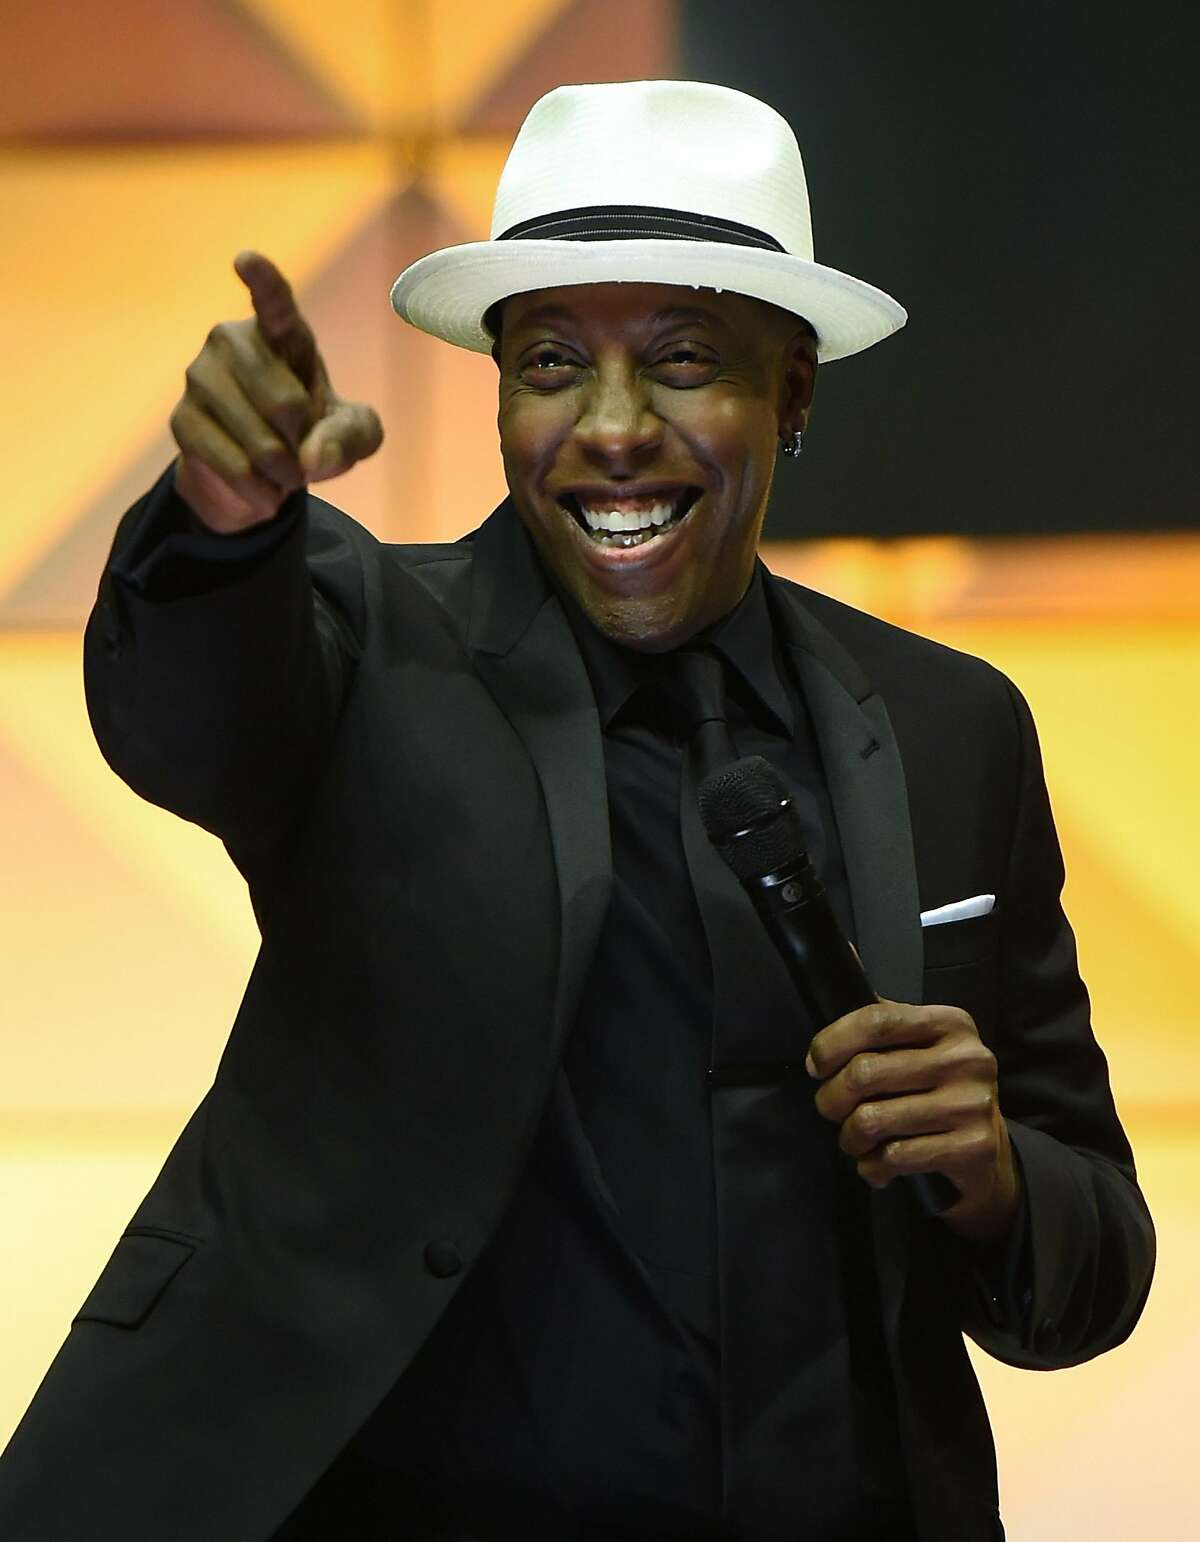 LAS VEGAS, NV - JULY 13: Comedian and talk show host Arsenio Hall hosts the 20th annual Hooters International Swimsuit Pageant at The Pearl concert theater at Palms Casino Resort on July 13, 2016 in Las Vegas, Nevada. (Photo by Ethan Miller/Getty Images)